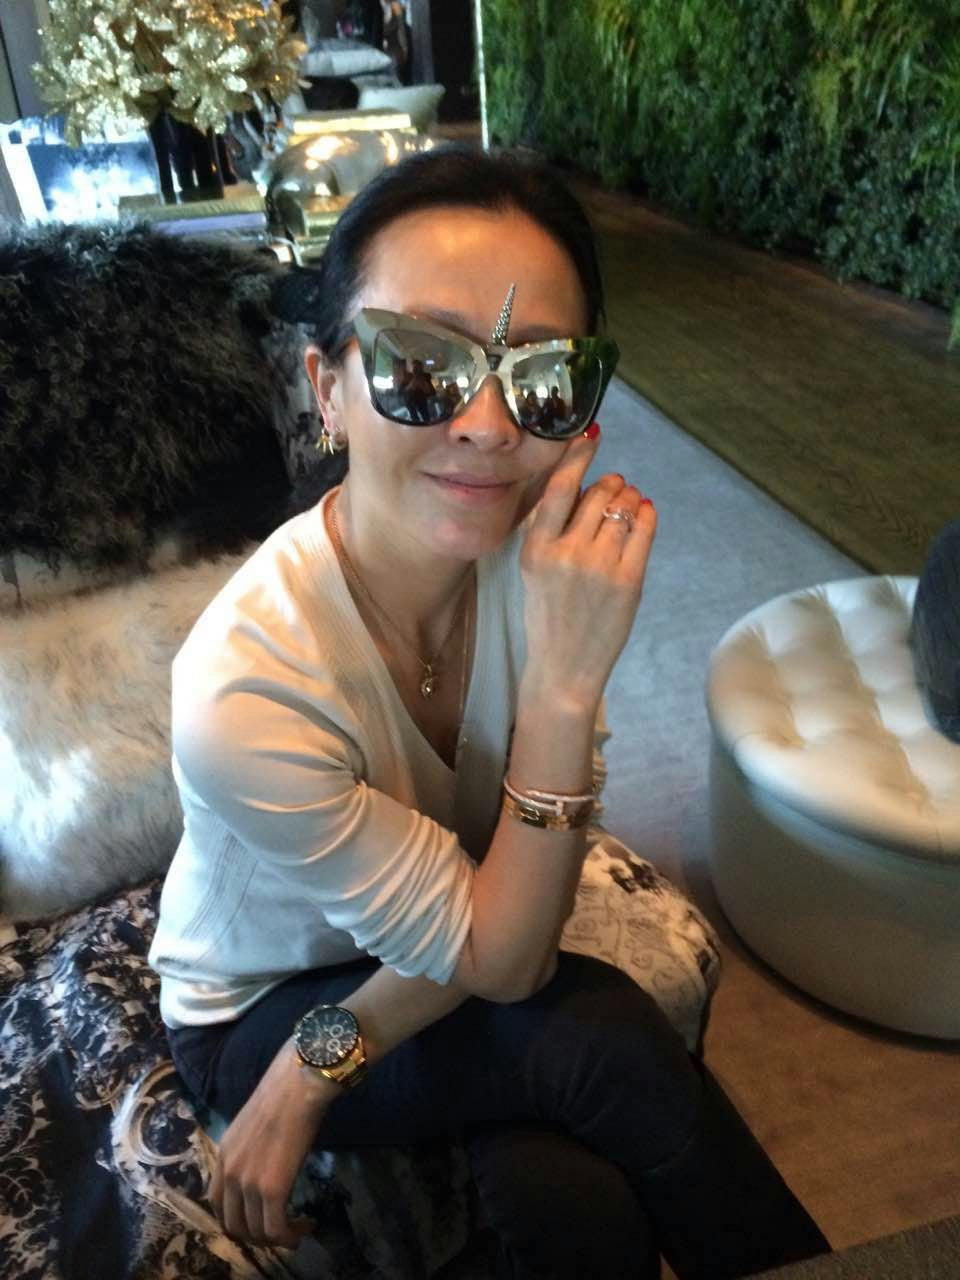 Actress Carina Lau 劉嘉玲 wears REVE by RENE unicorn I am the limited edition sunglasses